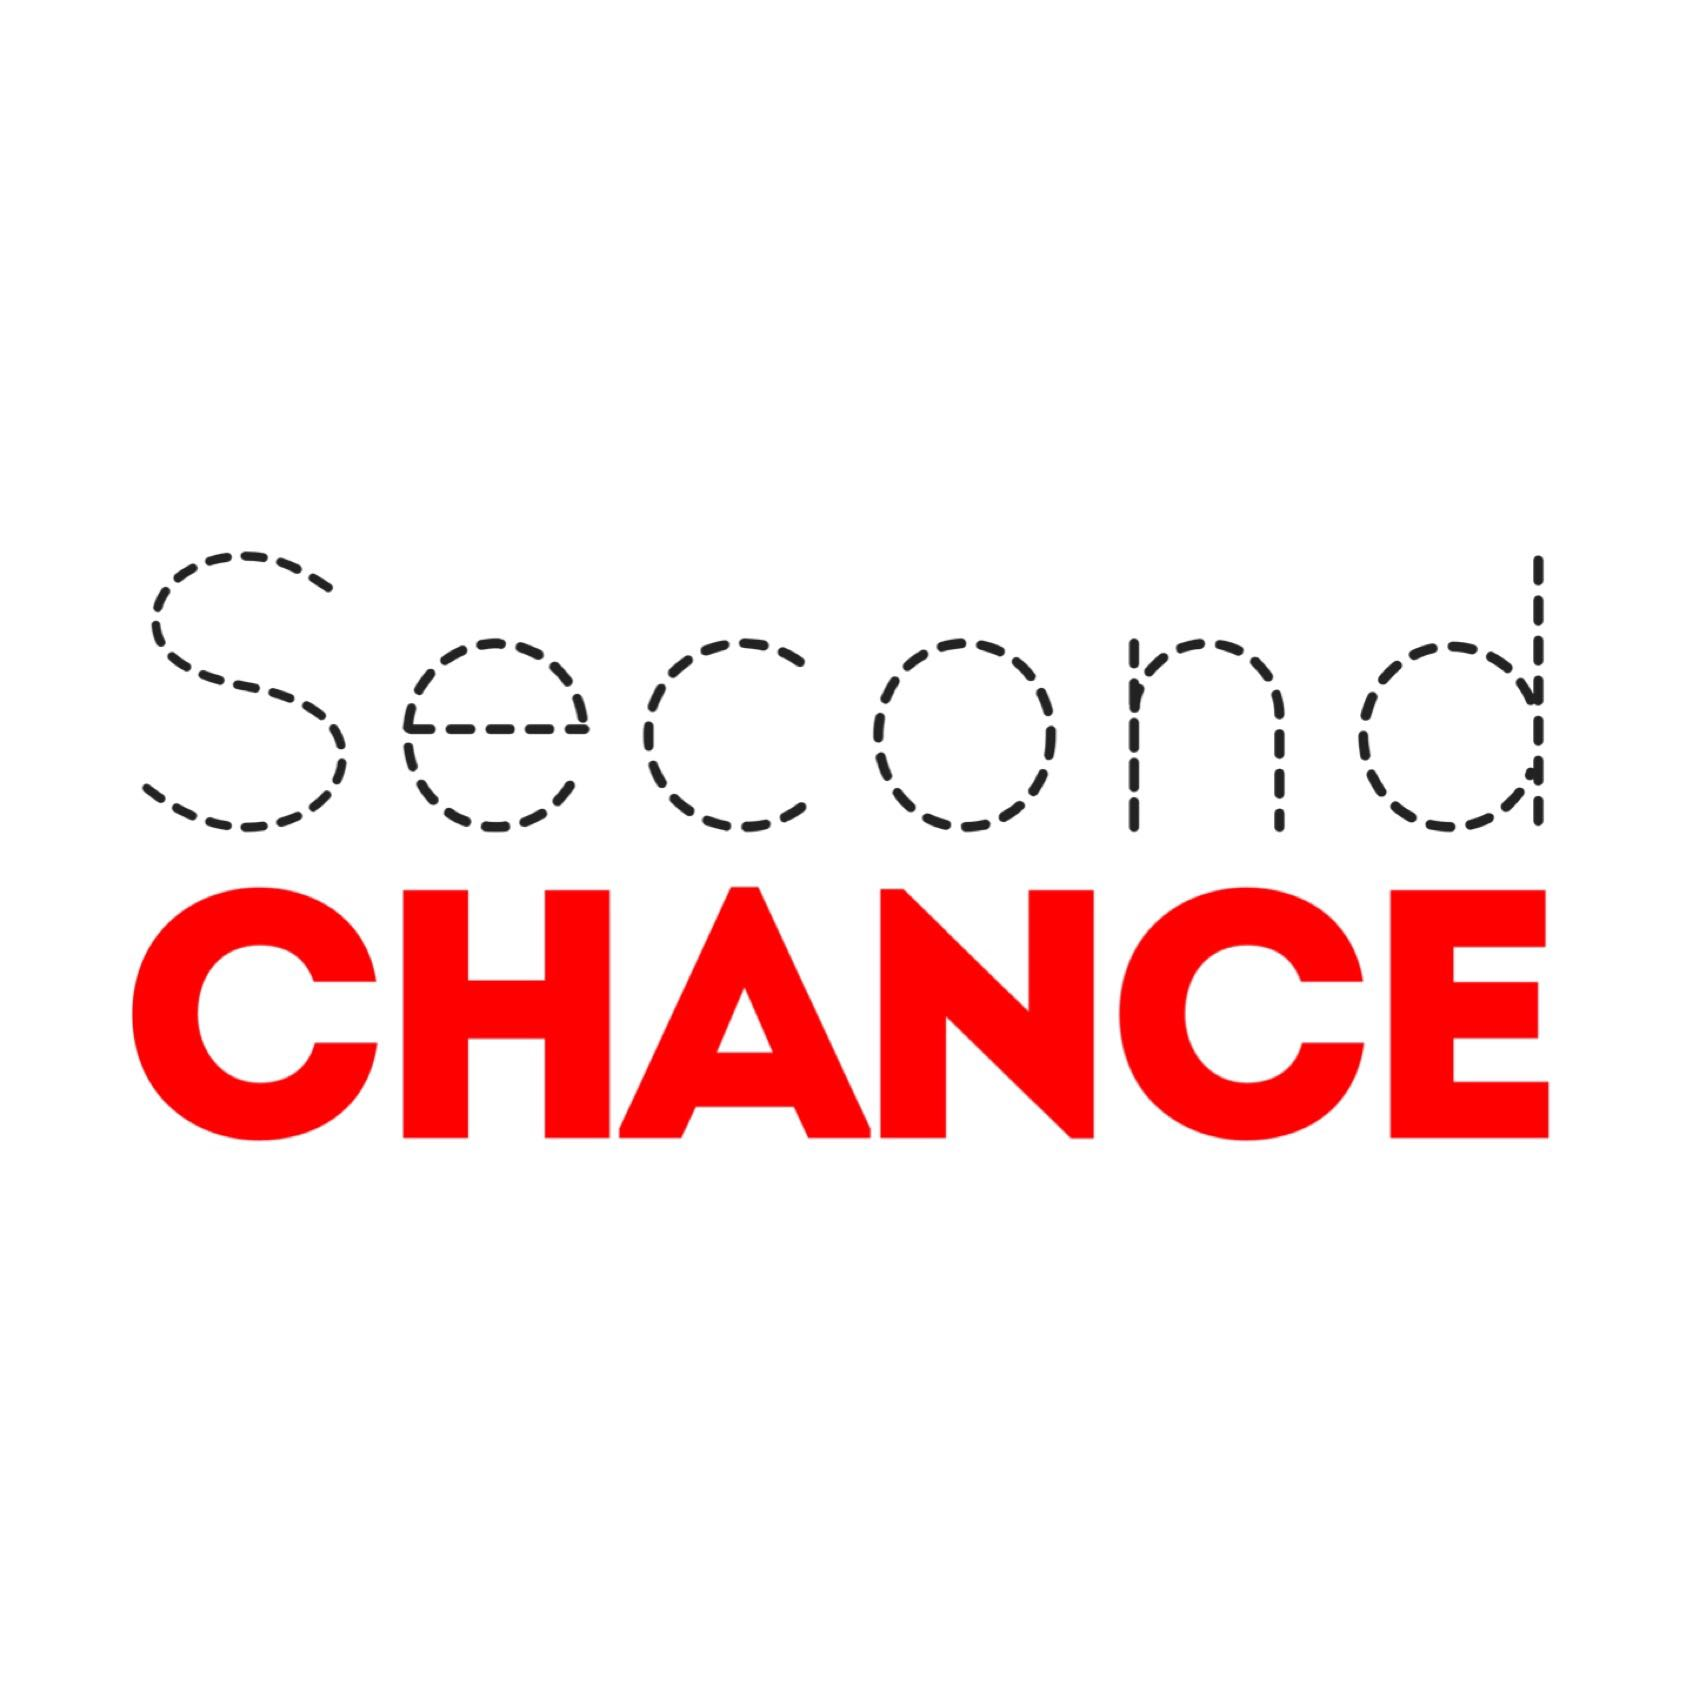 givingsecondchance